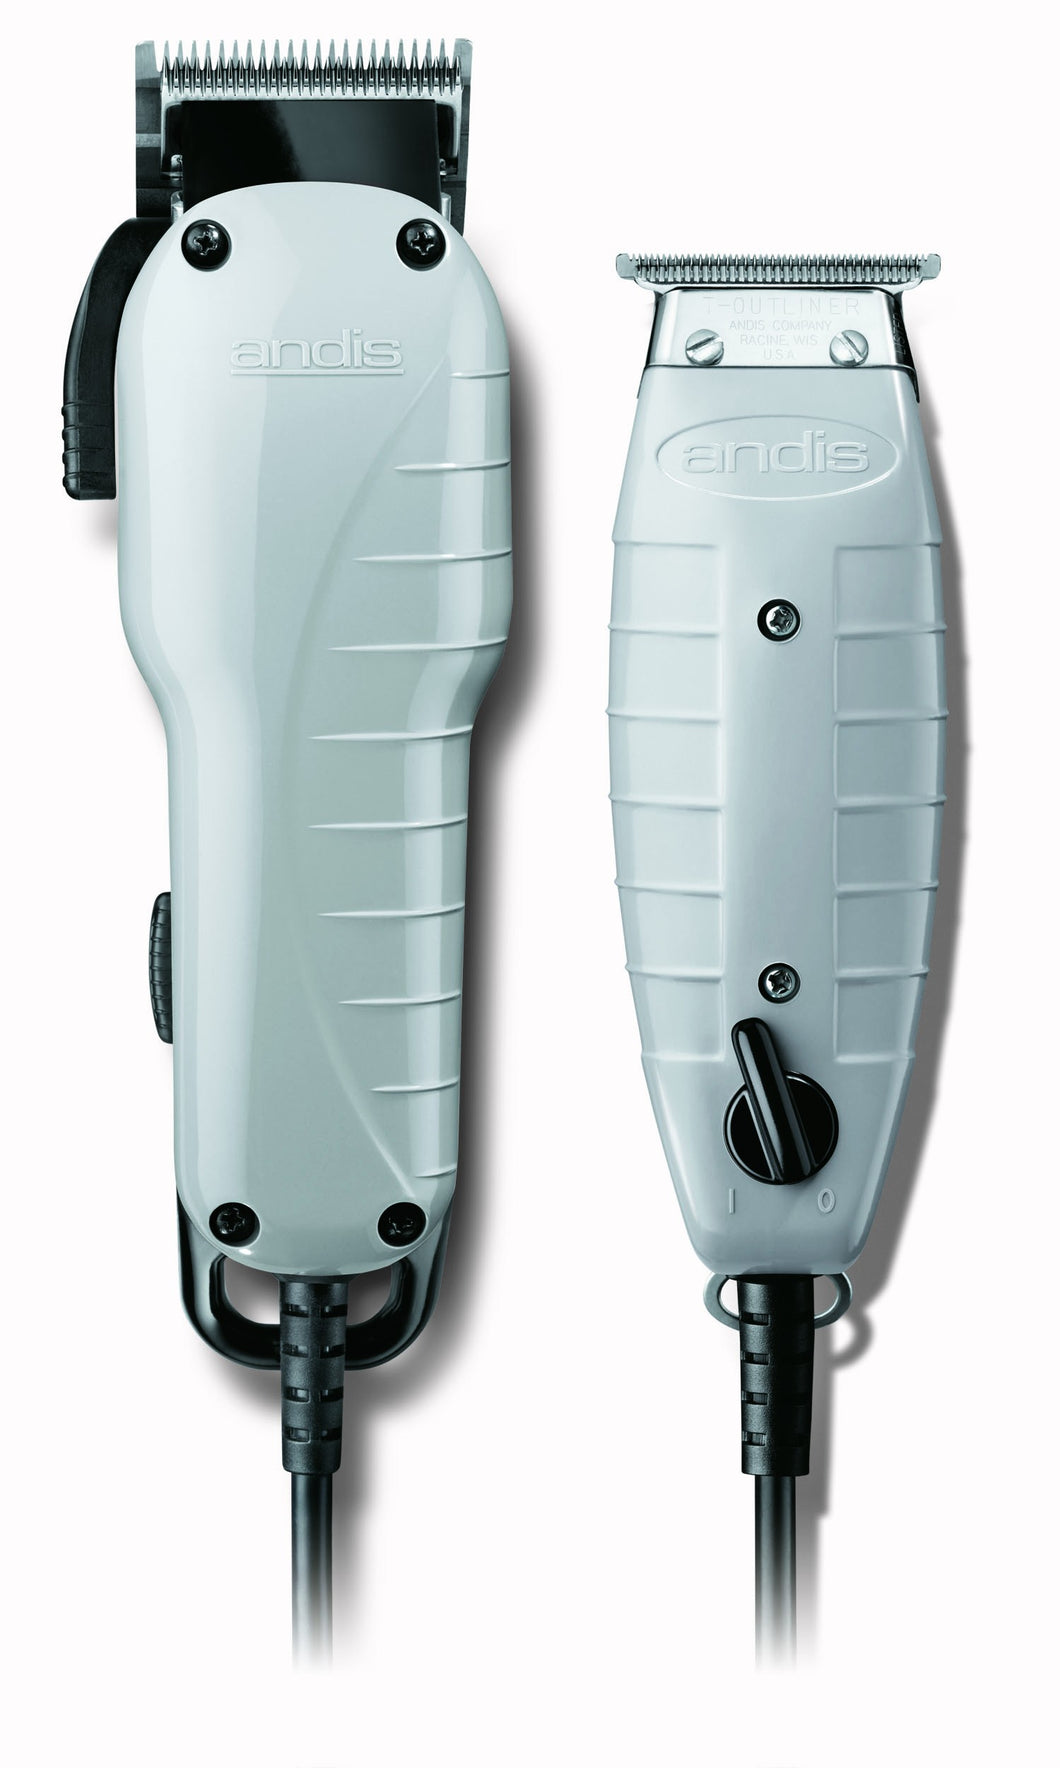 Andis Barber Combo Powerful Clipper Trimmer Combo Kit (ENVY & T-OUTLINER) 66325